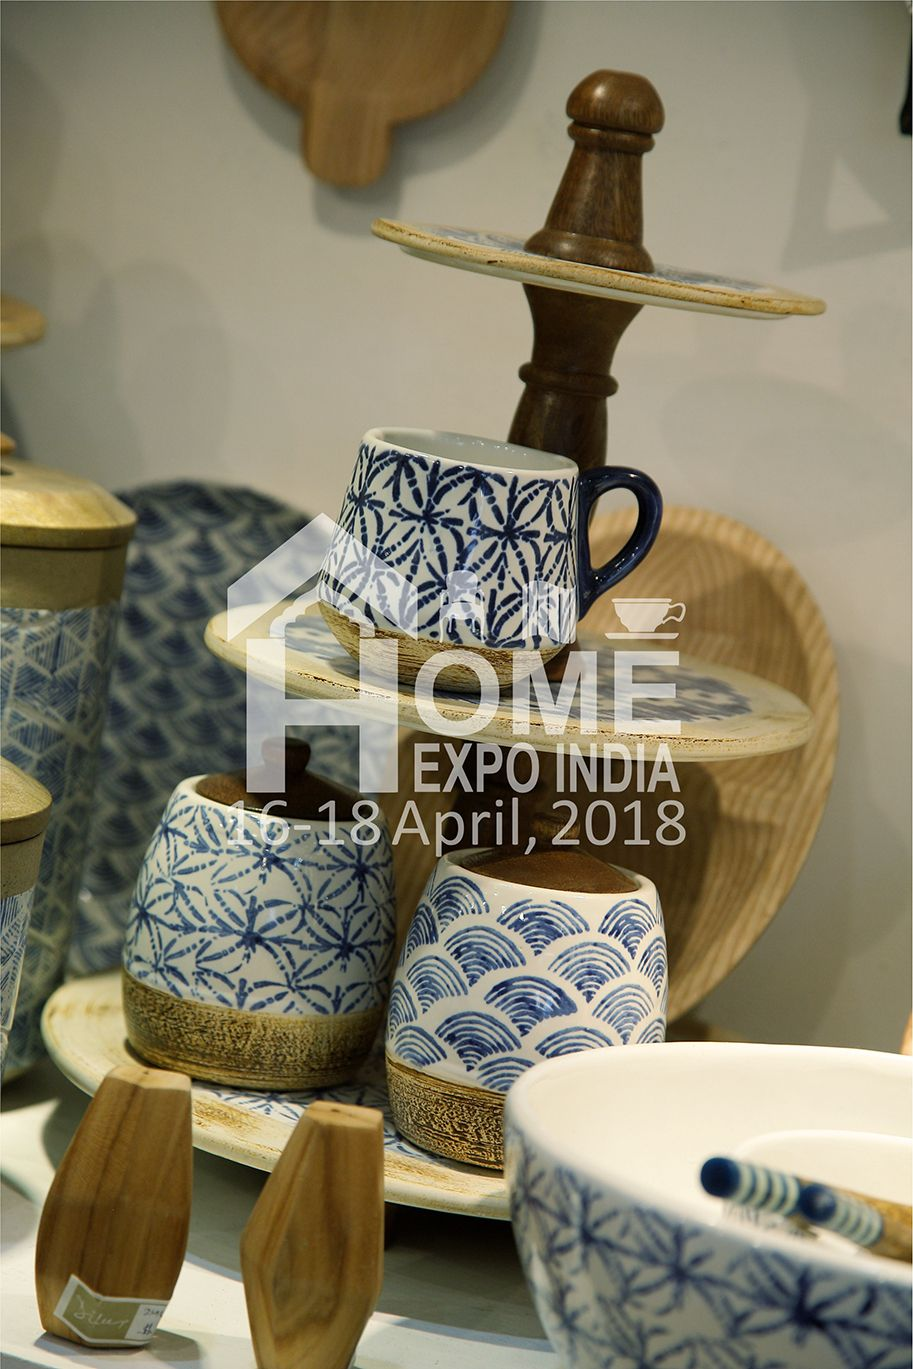 Wood And Ceramic Create Magic With Handpainted Patterns Source These Among Houseware At Home Expo India 2018 Homeex Decorative Jars Housewares Decor